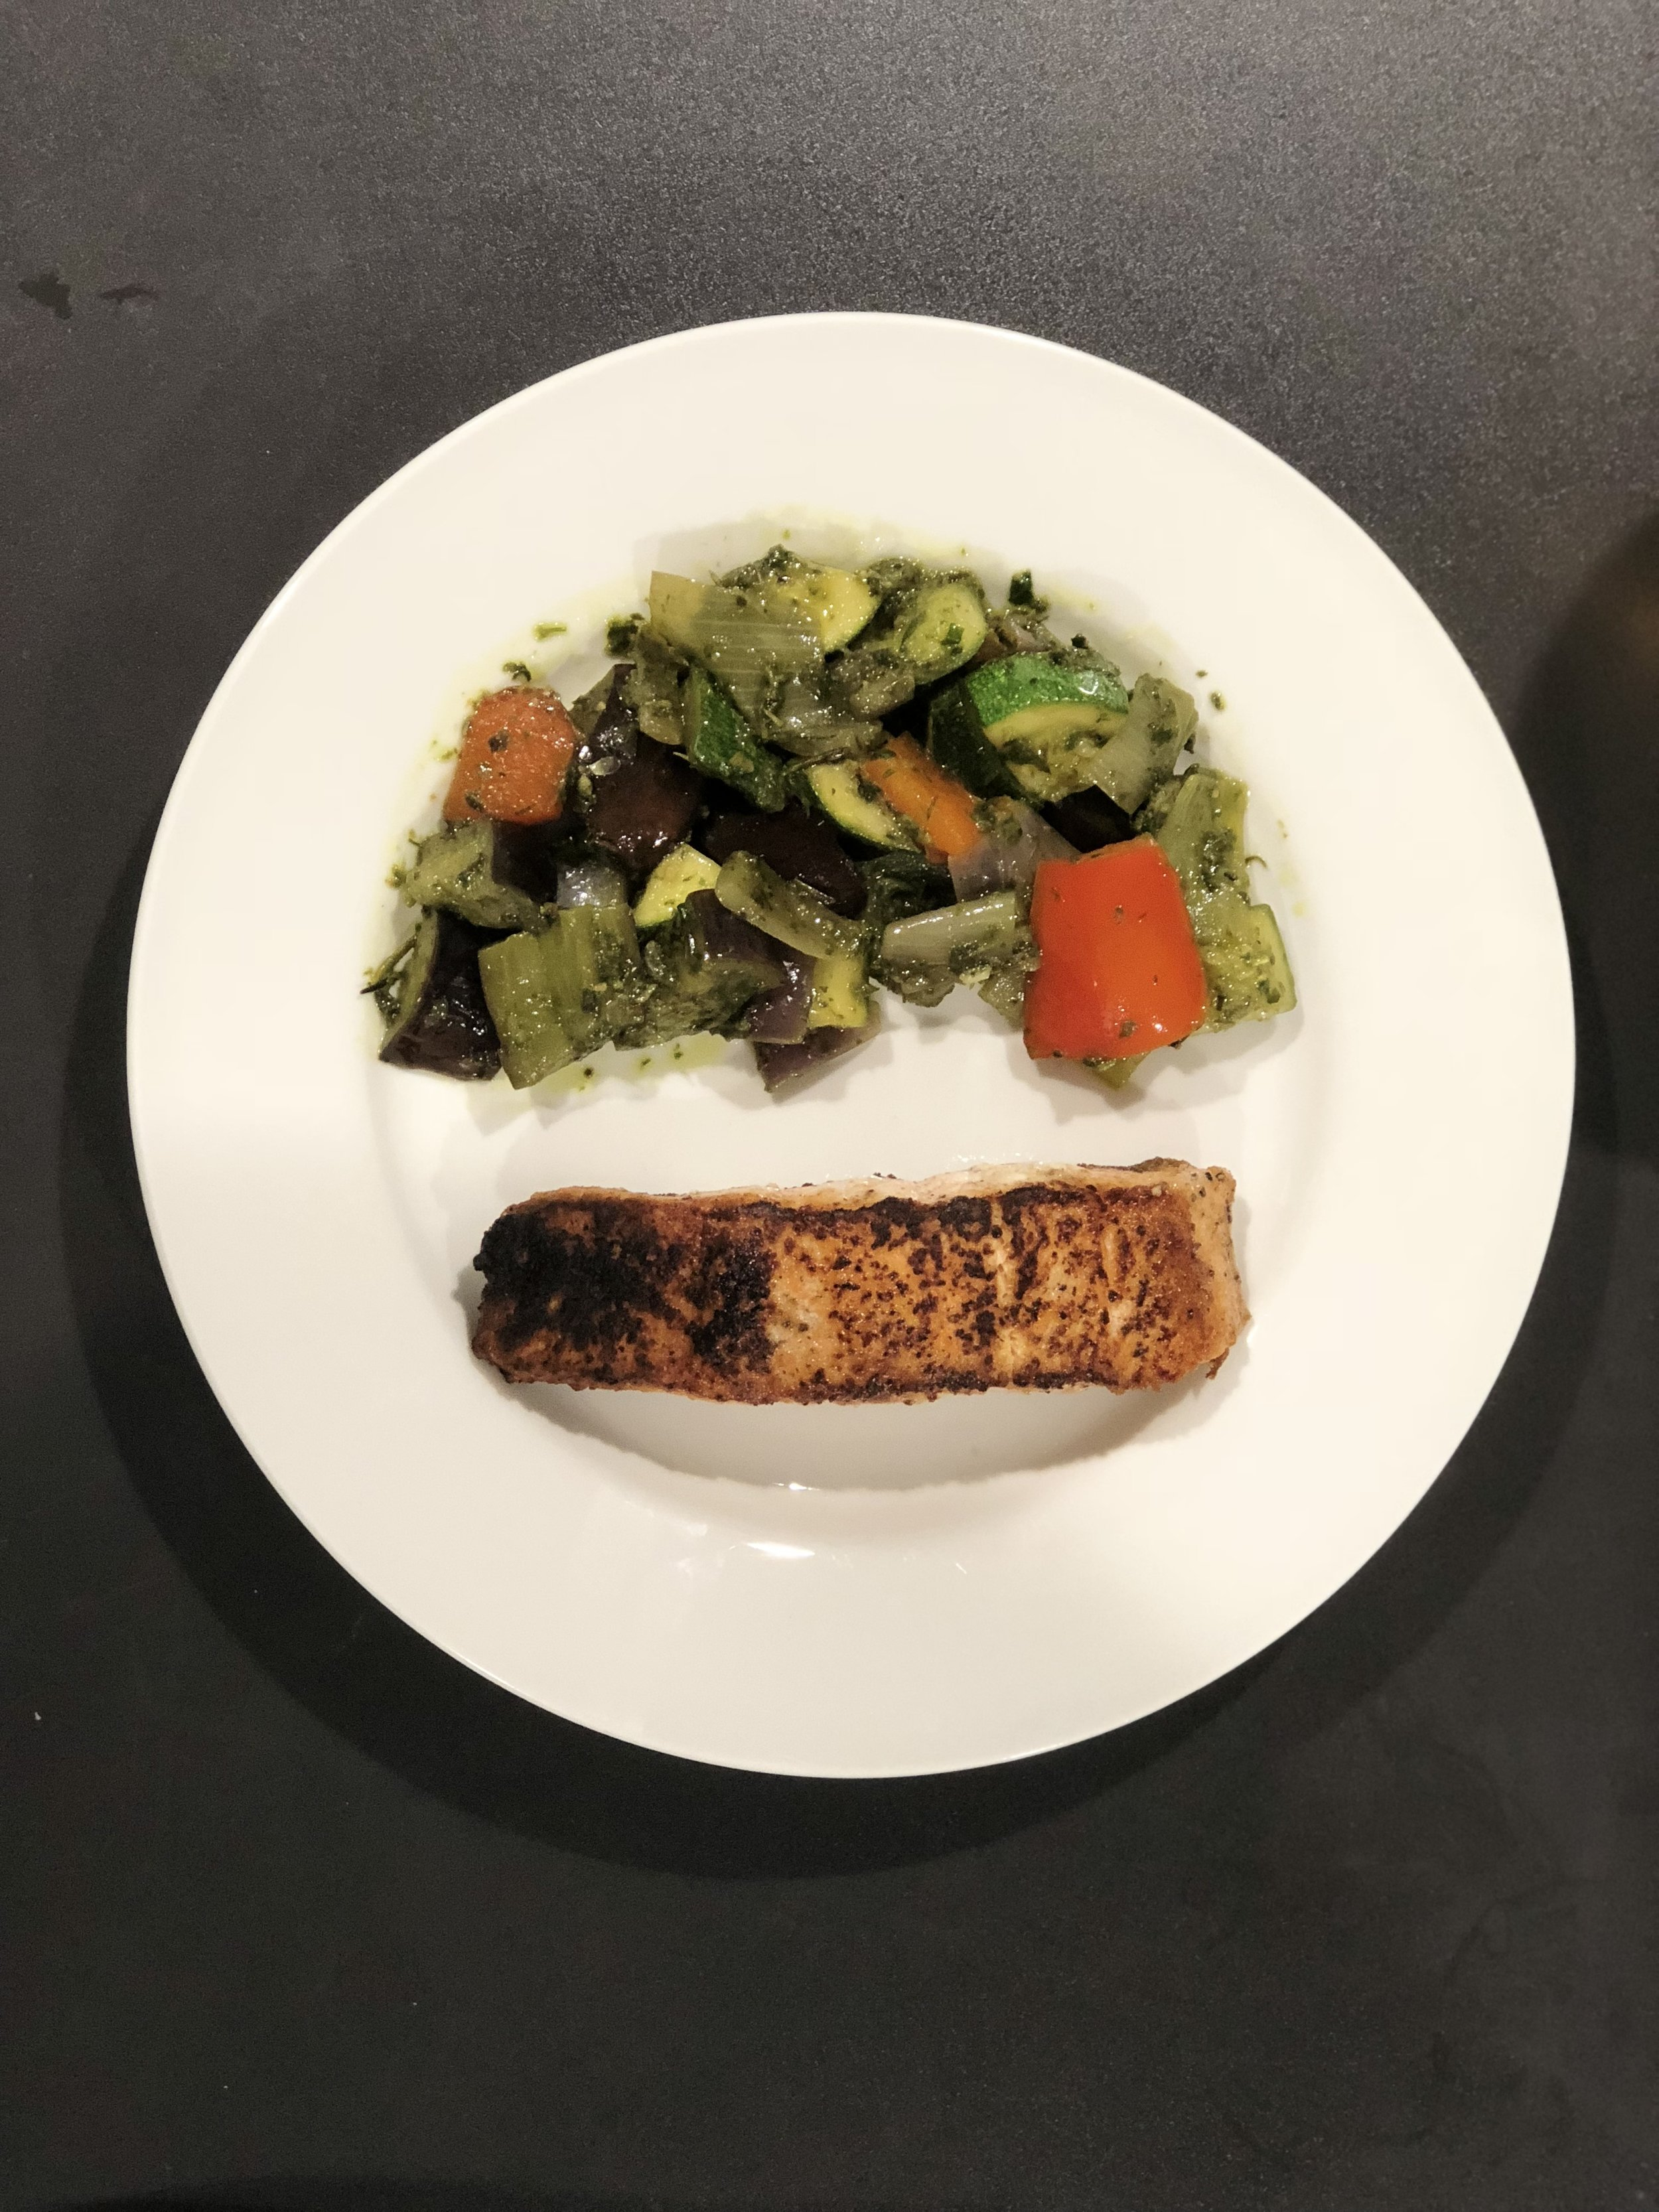 I loved cooking in my student dorm. Lots of fresh salmon dinners!